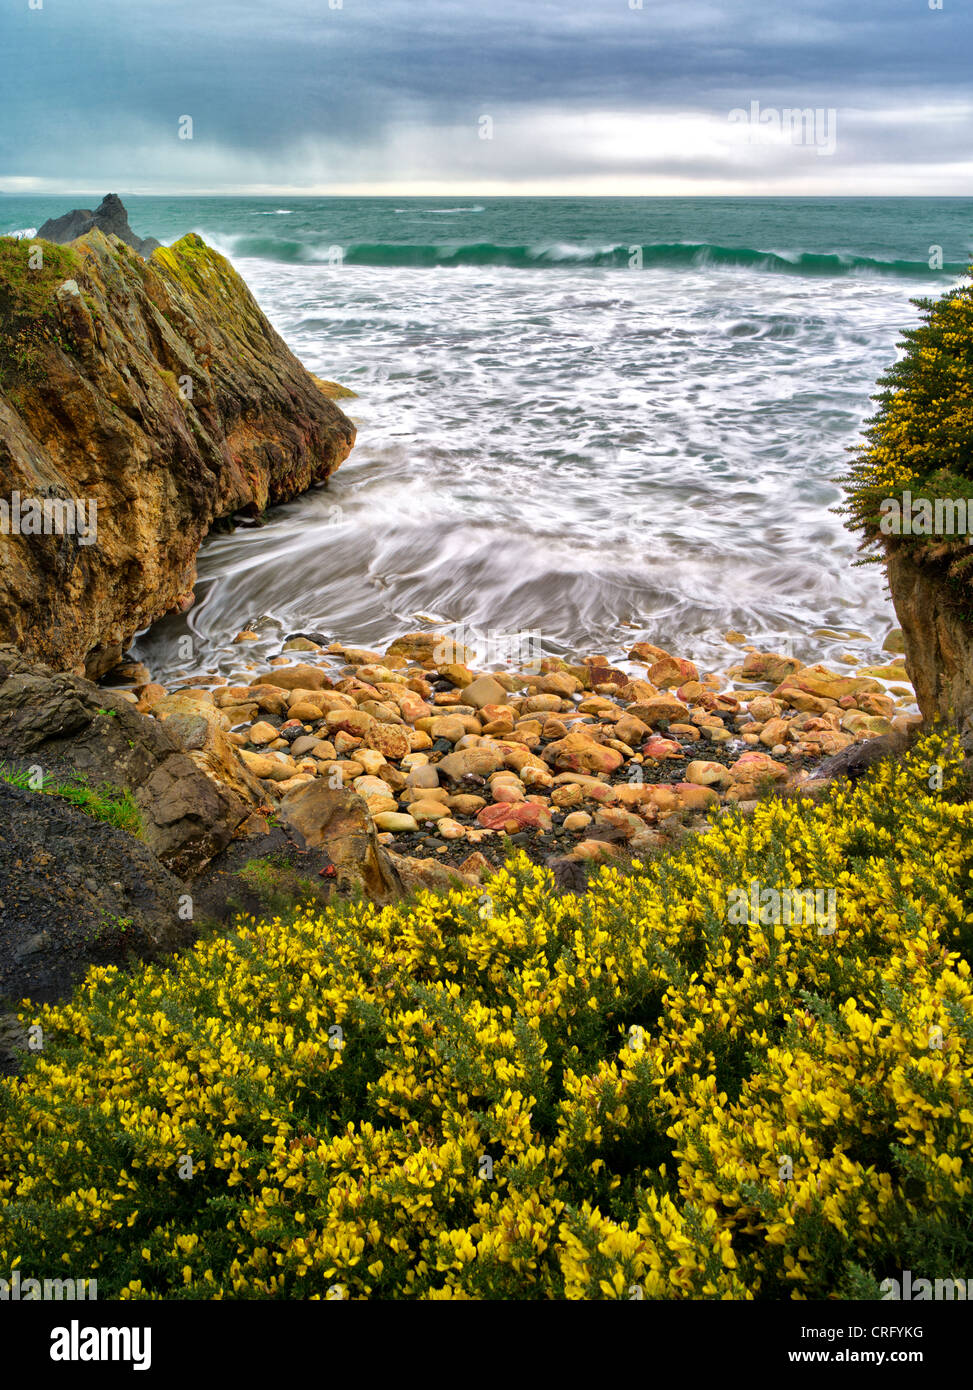 Blooming gorse and waves. Harris Beach State Park, Oregon - Stock Image